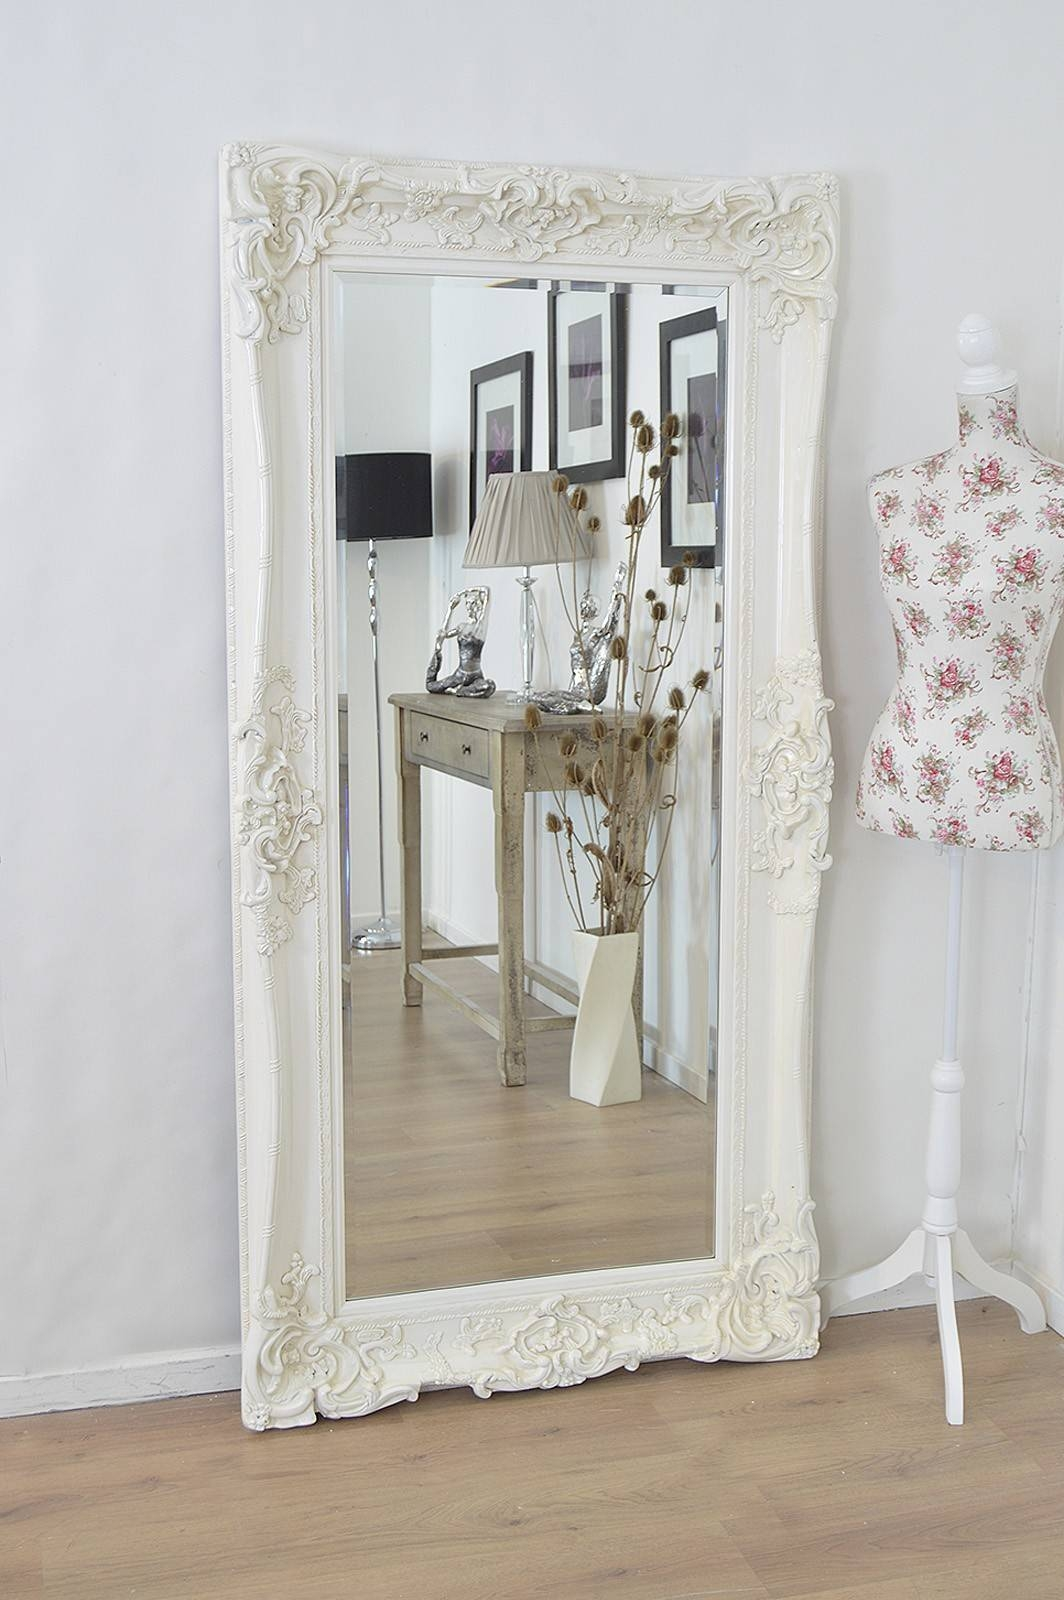 Shabby Chic Wall Mirror 40 Nice Decorating With Vintage Shabby regarding White Shabby Chic Wall Mirrors (Image 21 of 25)